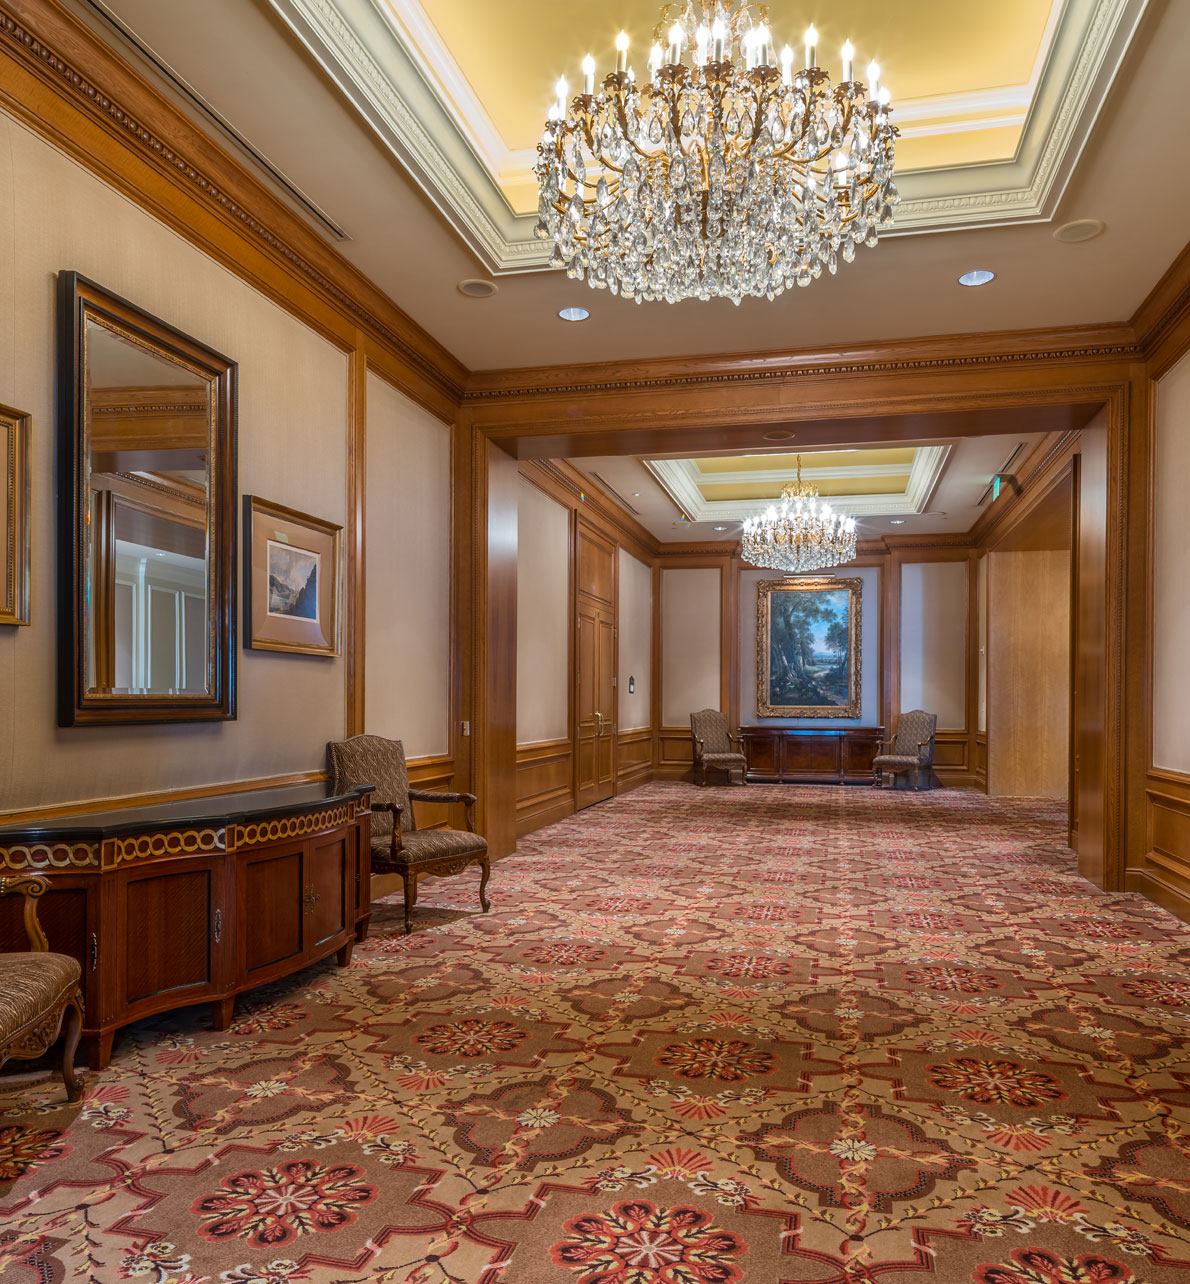 Savoy and Envoy reception area at the Grand America Hotel with chandeliers and wood trim.